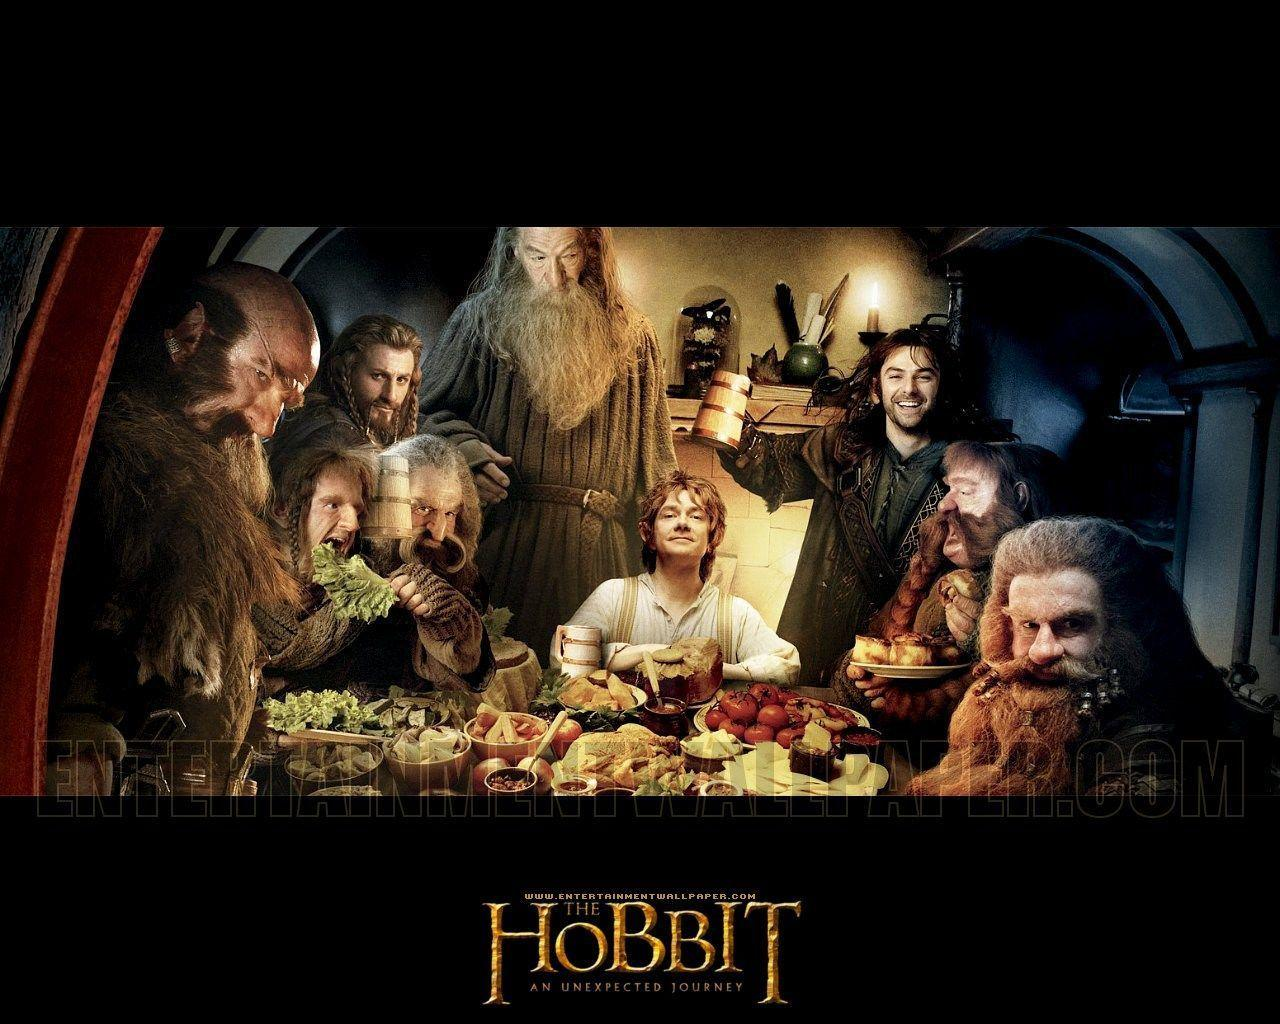 The Hobbit Movie HD Desktop Wallpapers | High Quality PC Dekstop ...